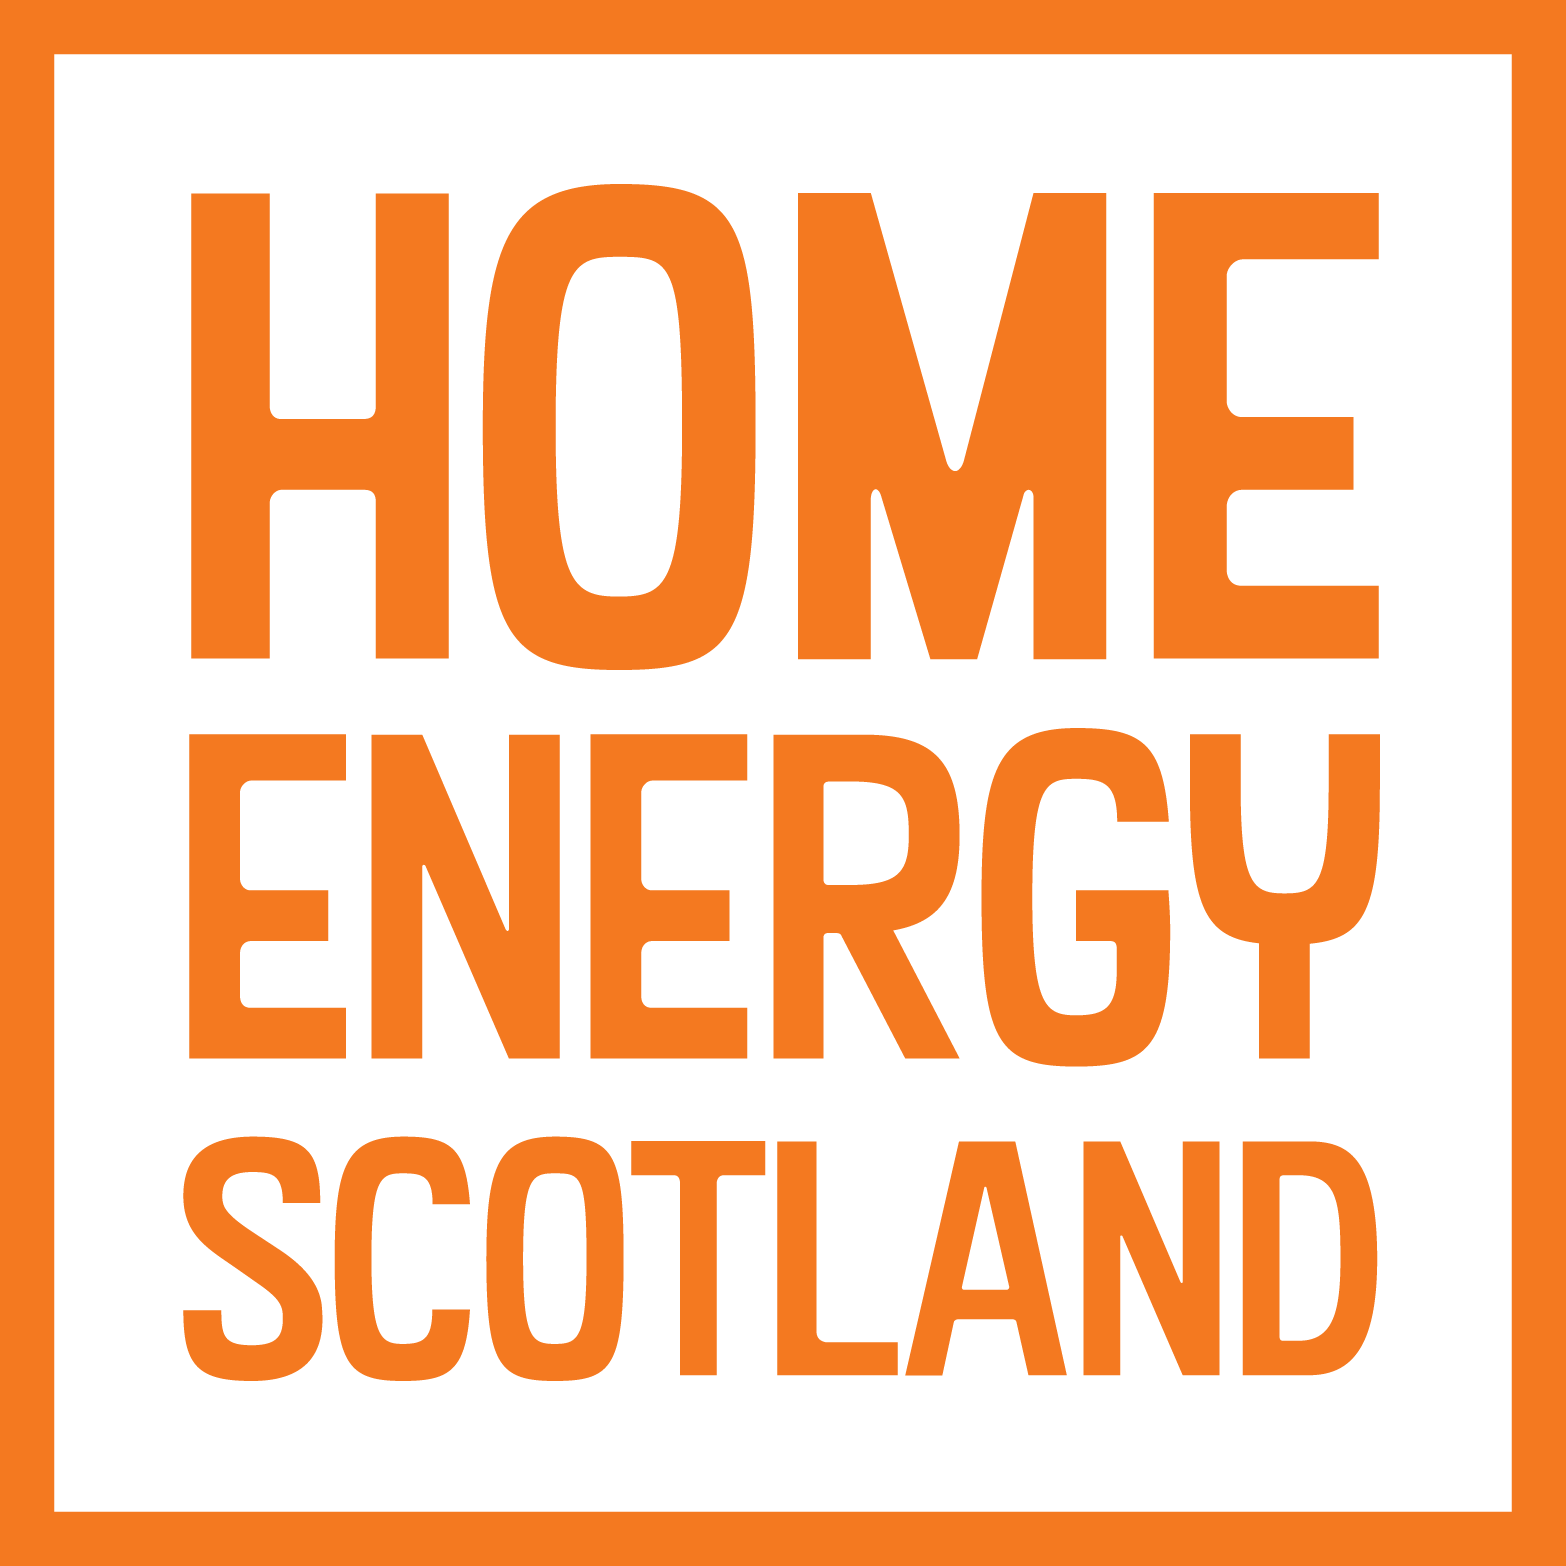 HOME_ENERGY_SCOTLAND